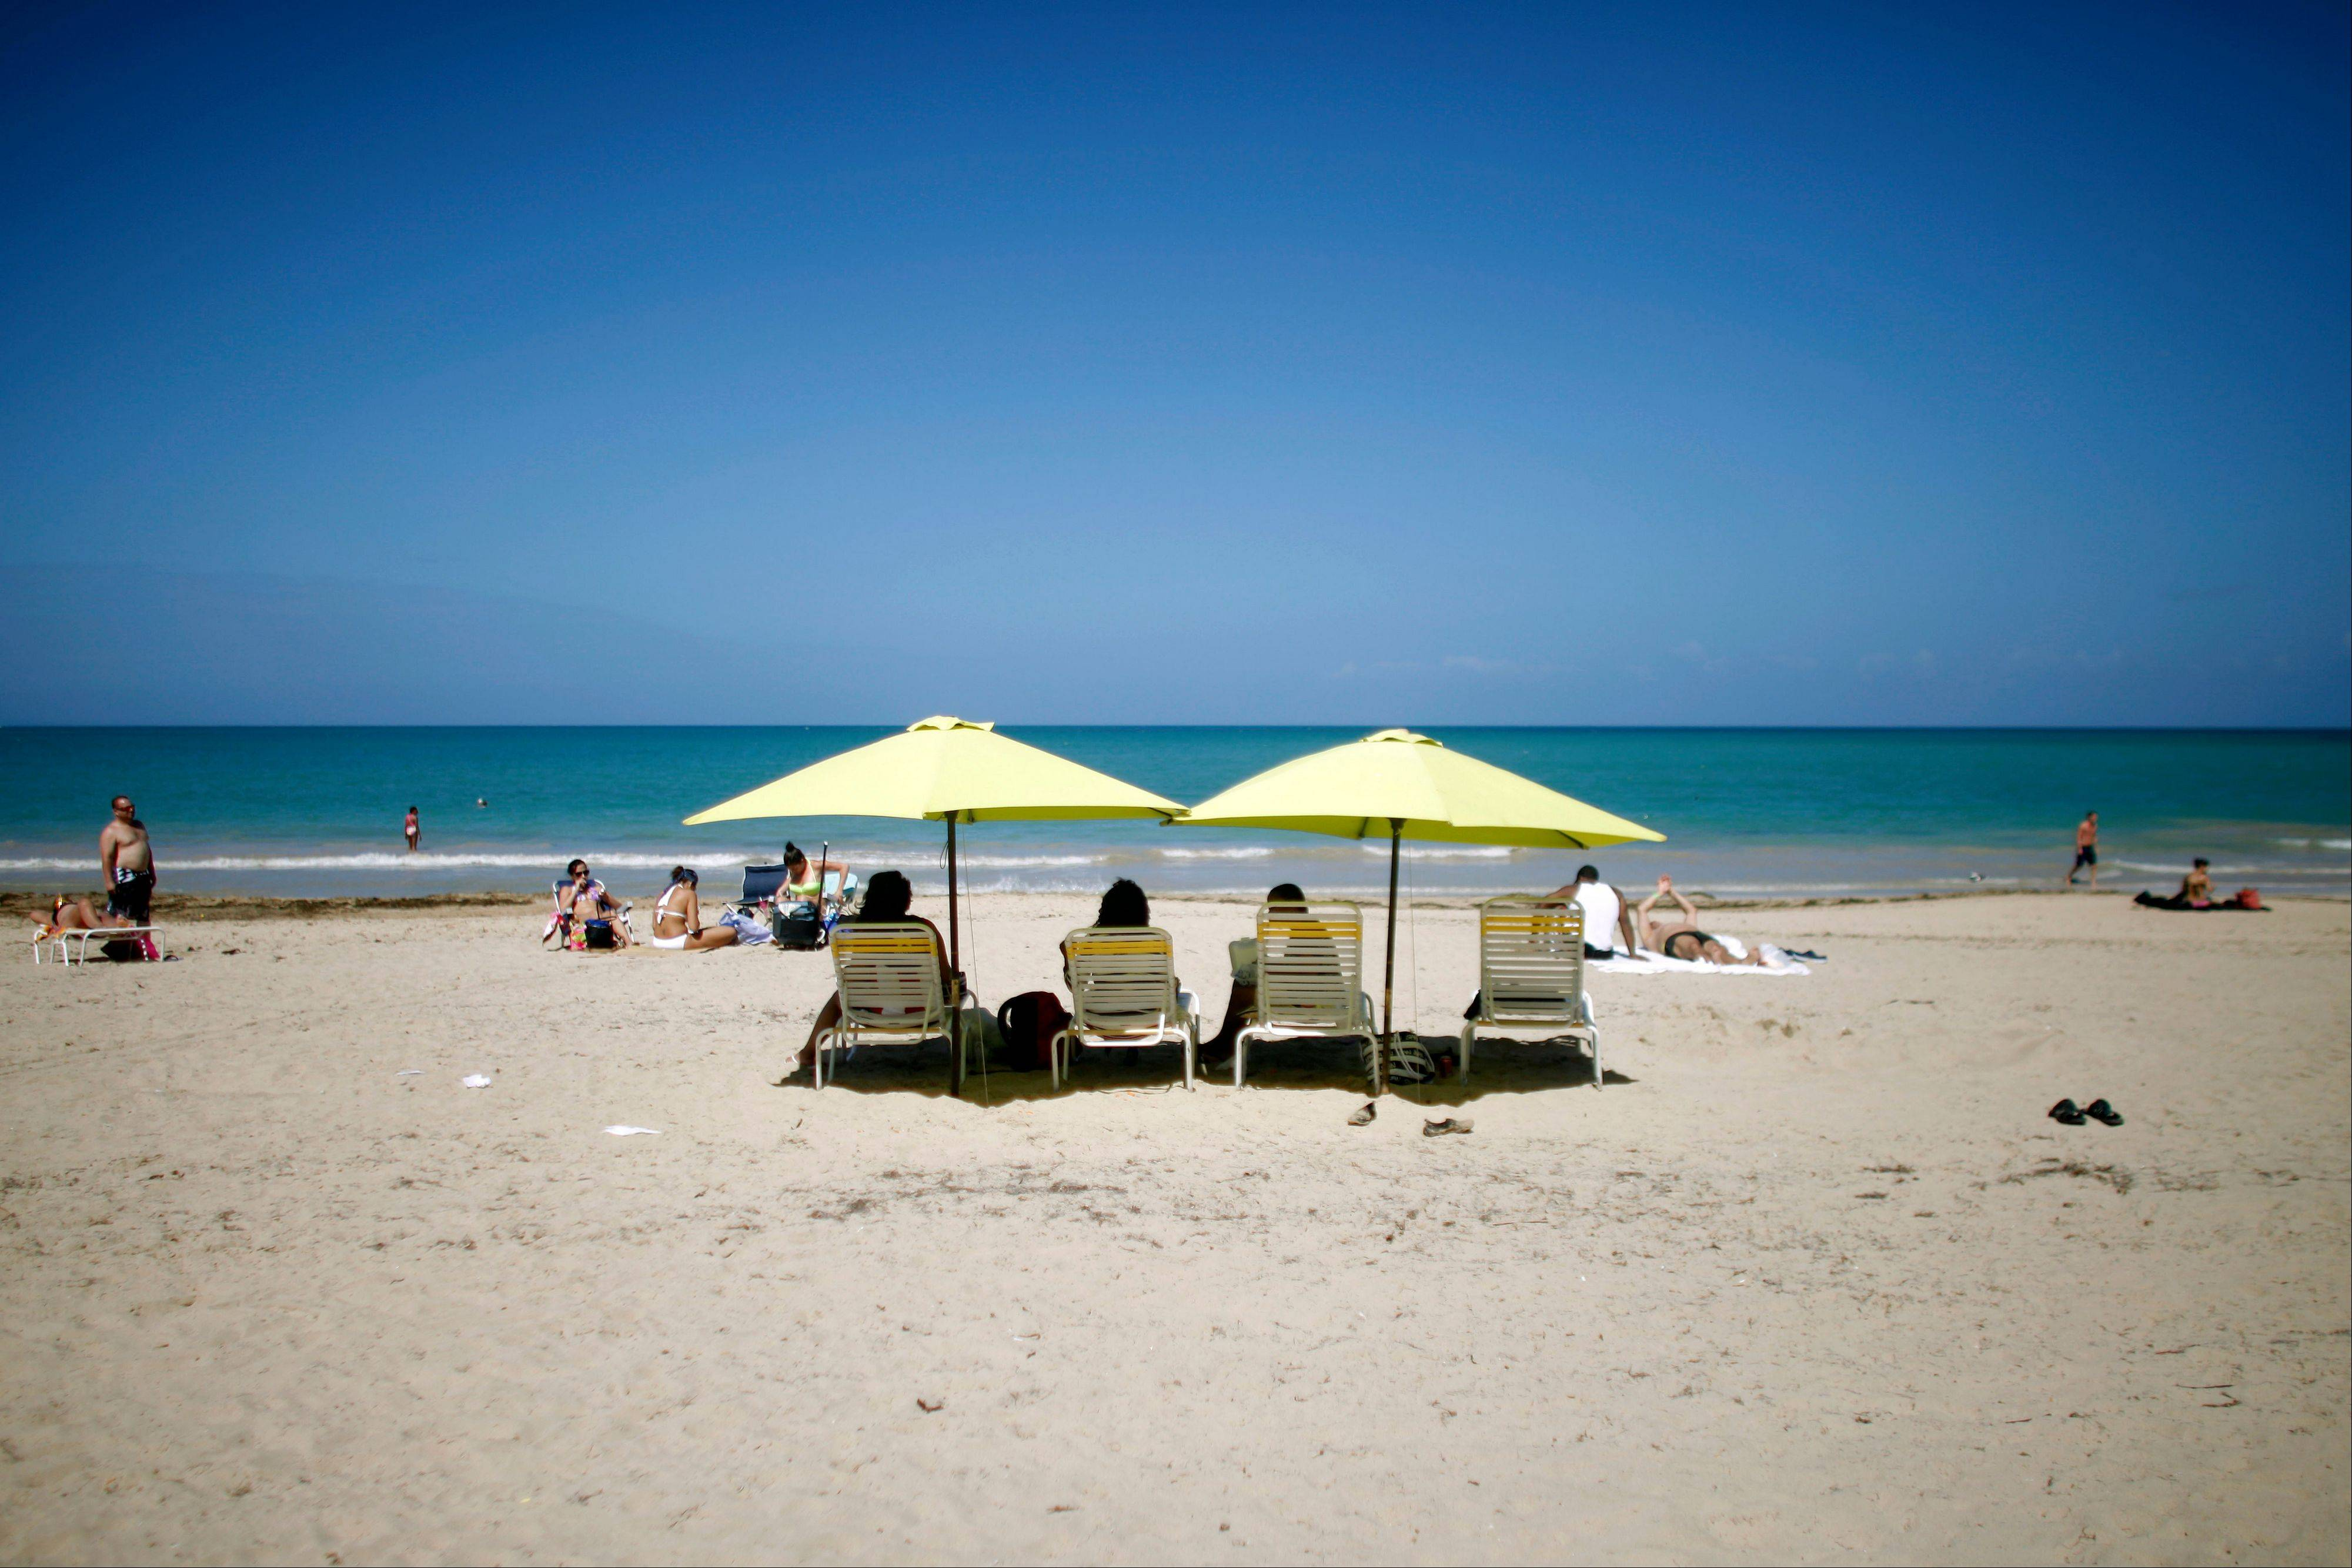 People enjoy a sunny day at the Isla Verde Beach in Carolina, Puerto Rico.